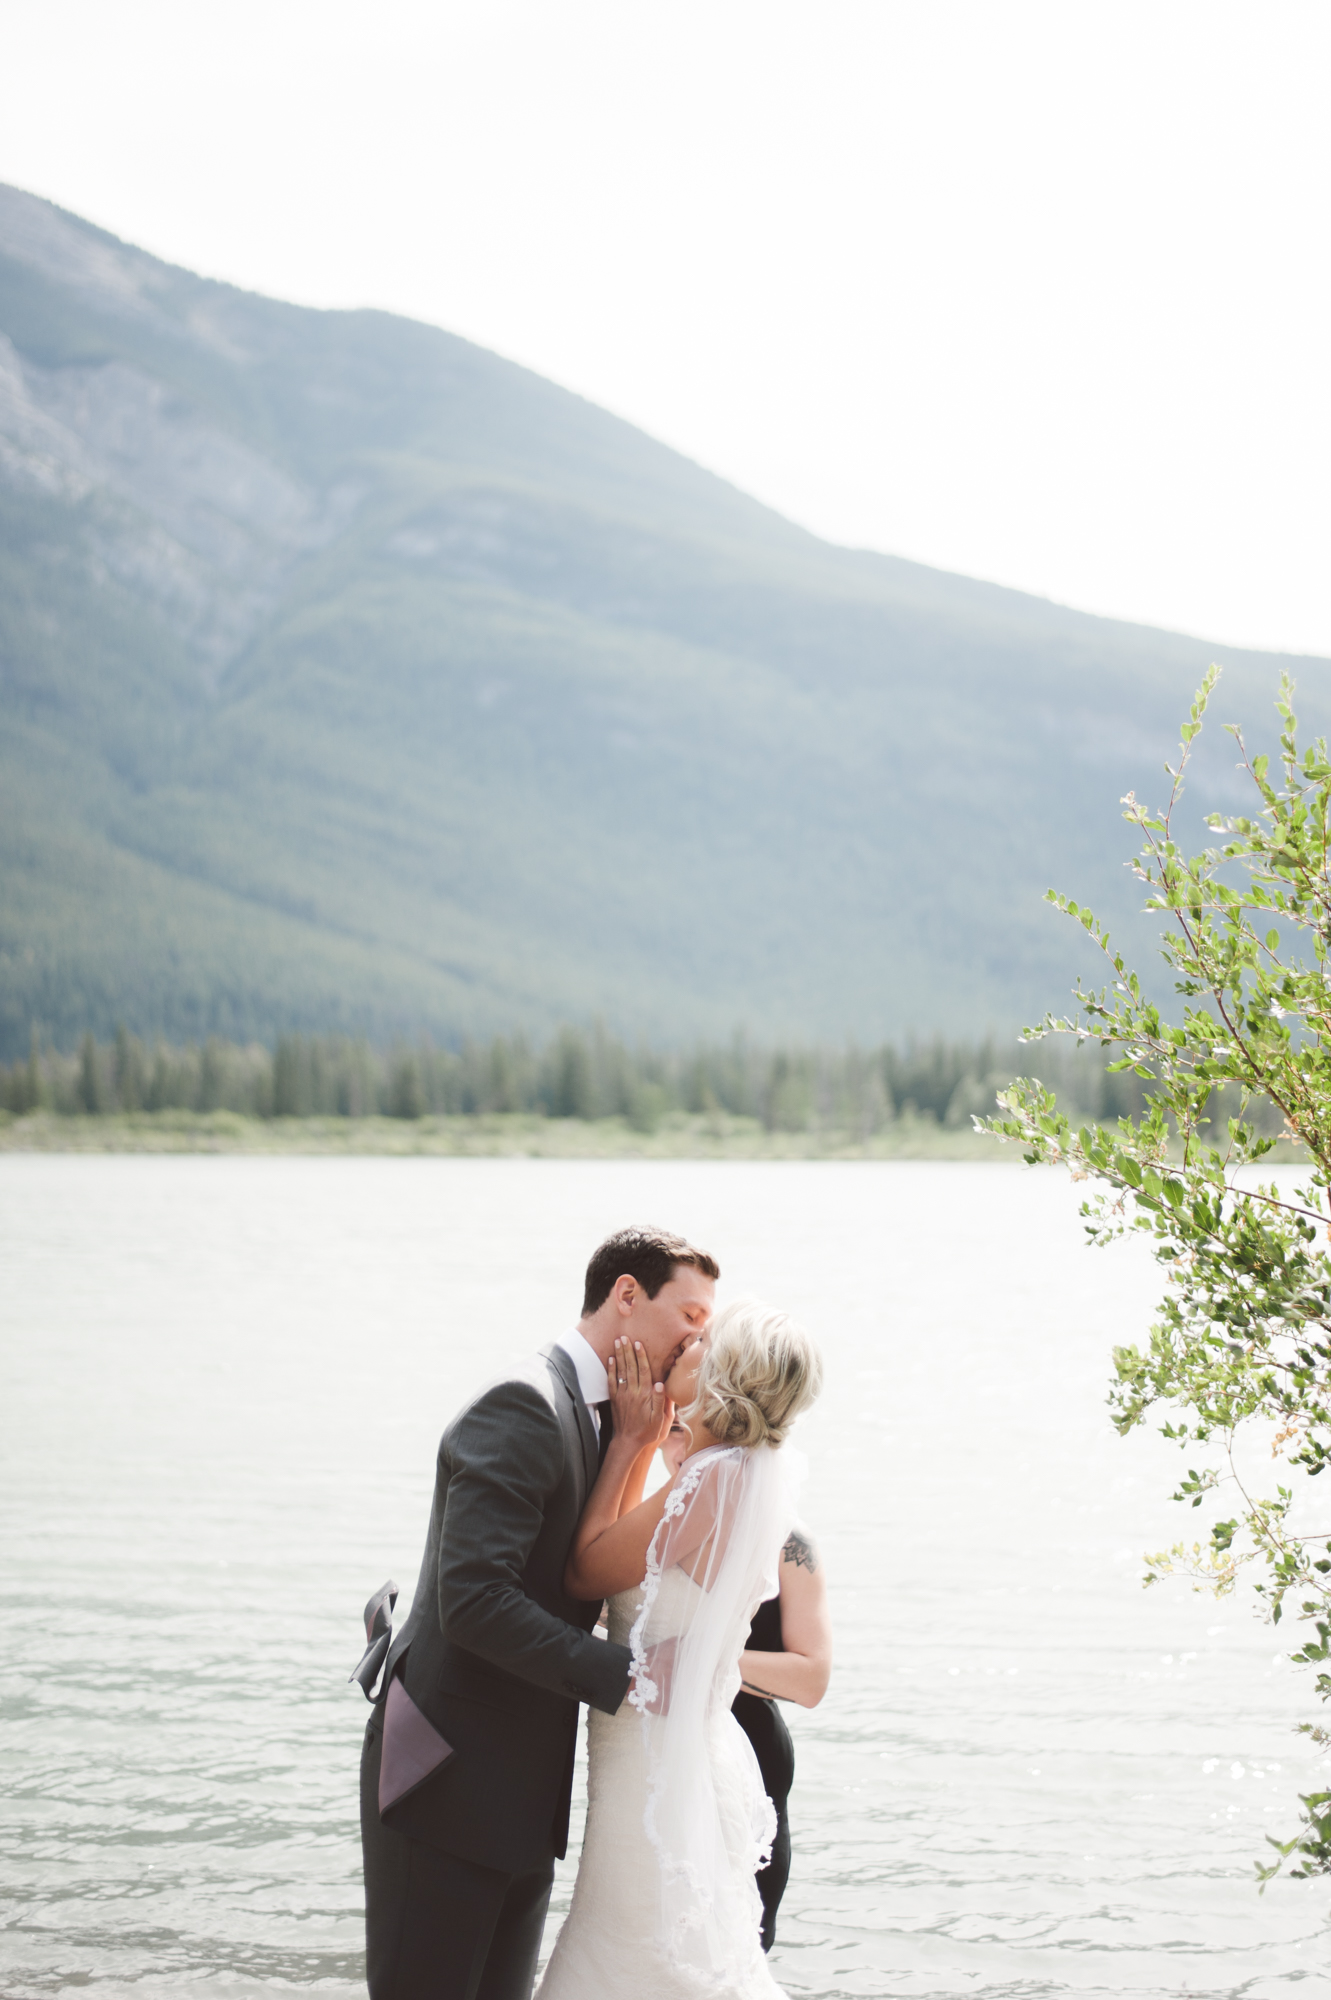 Rocky Mountain Banff Calgary Alberta Wedding-Jessika Hunter Photo-47.JPG